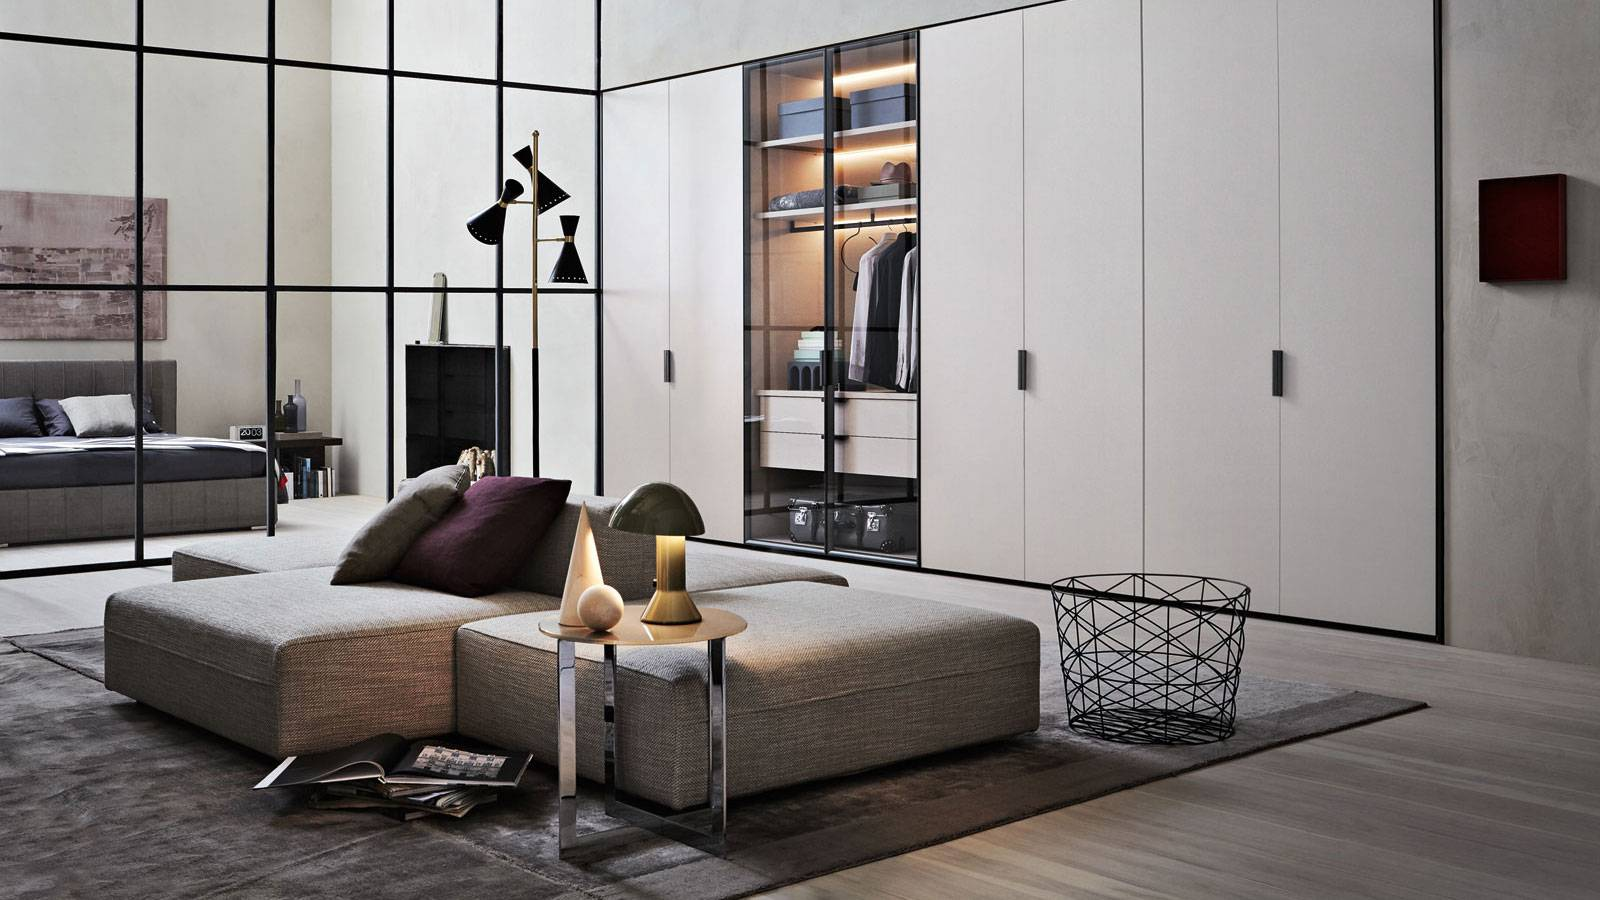 bedroom of design by Vincent Van Duysen for Molteni